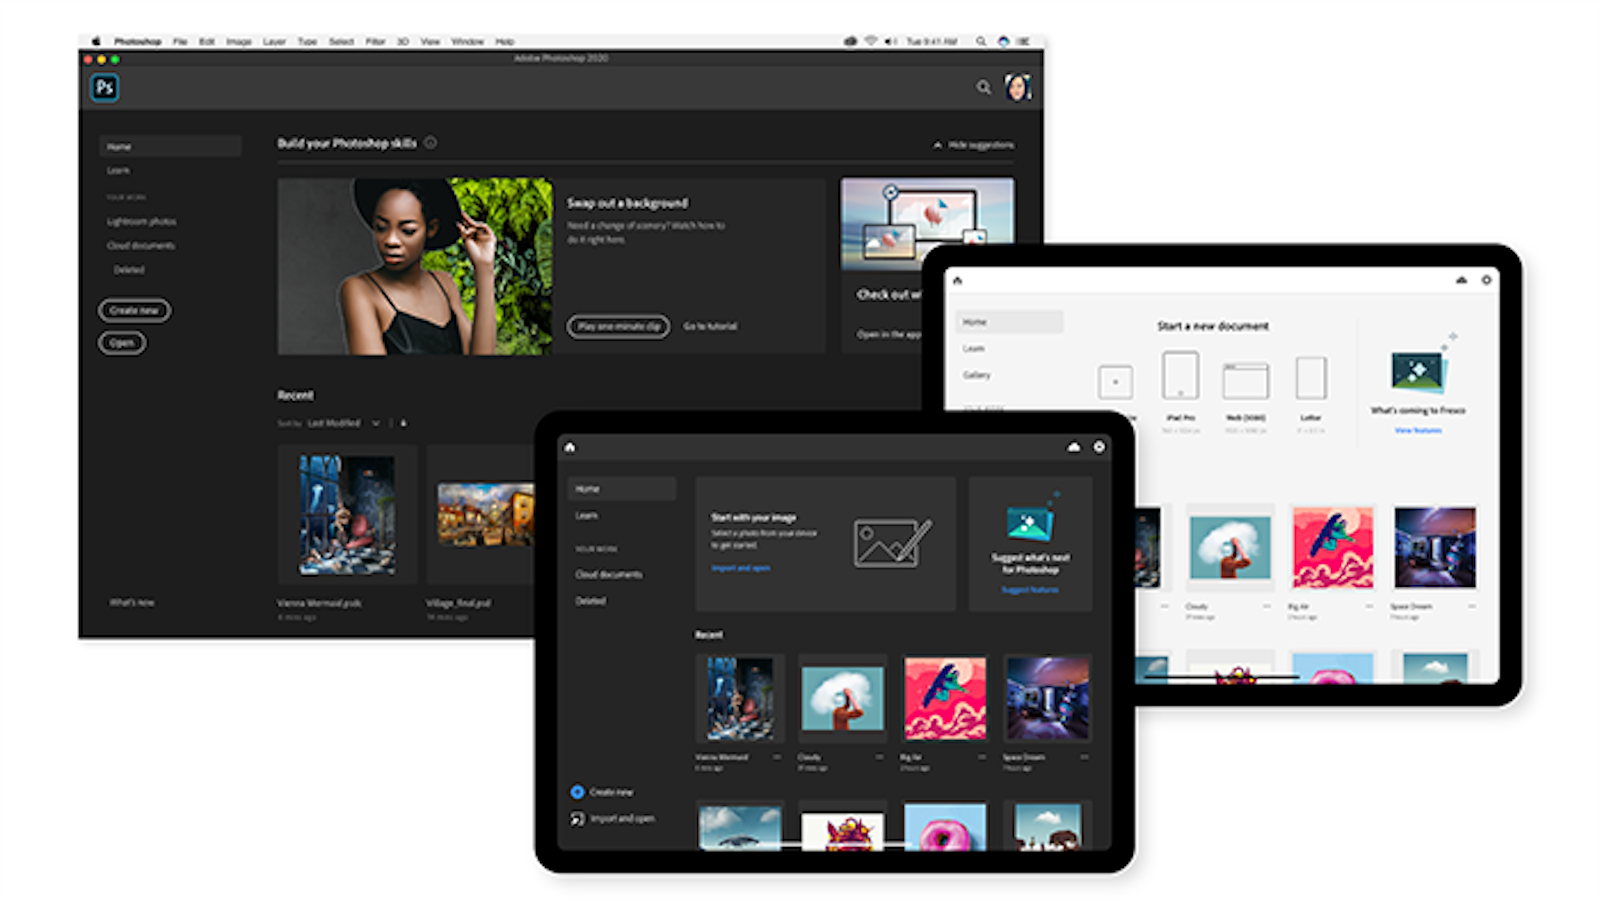 Adobe is Adding Livestreaming to Its Apps So You Can Stream Your Photo Editing Sessions